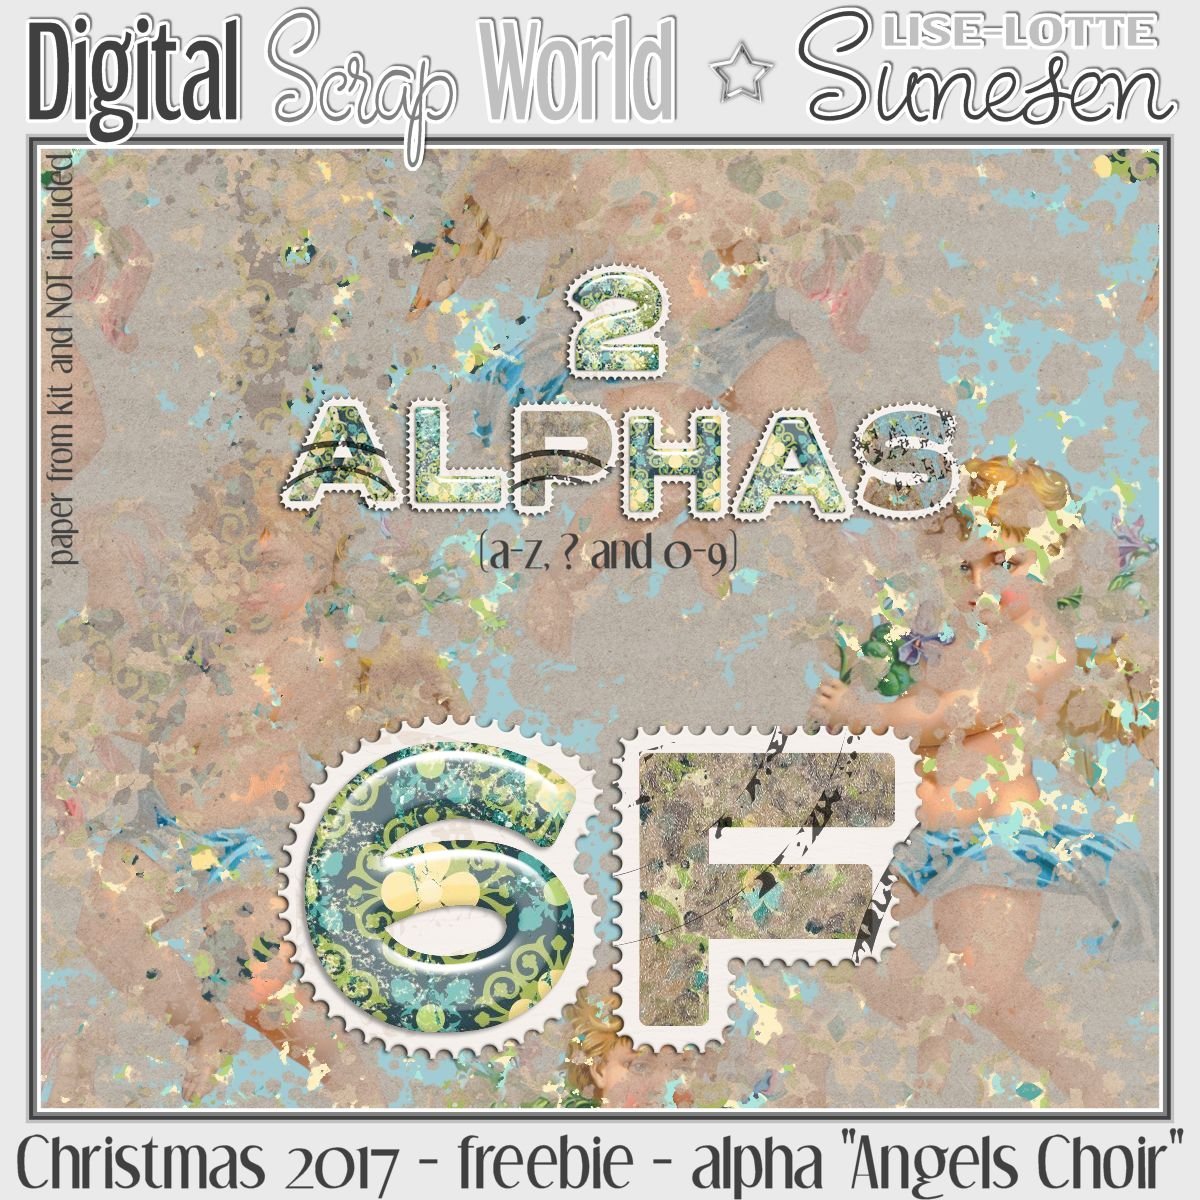 Christmas 2017 - freebie - Alpha Angels Choir